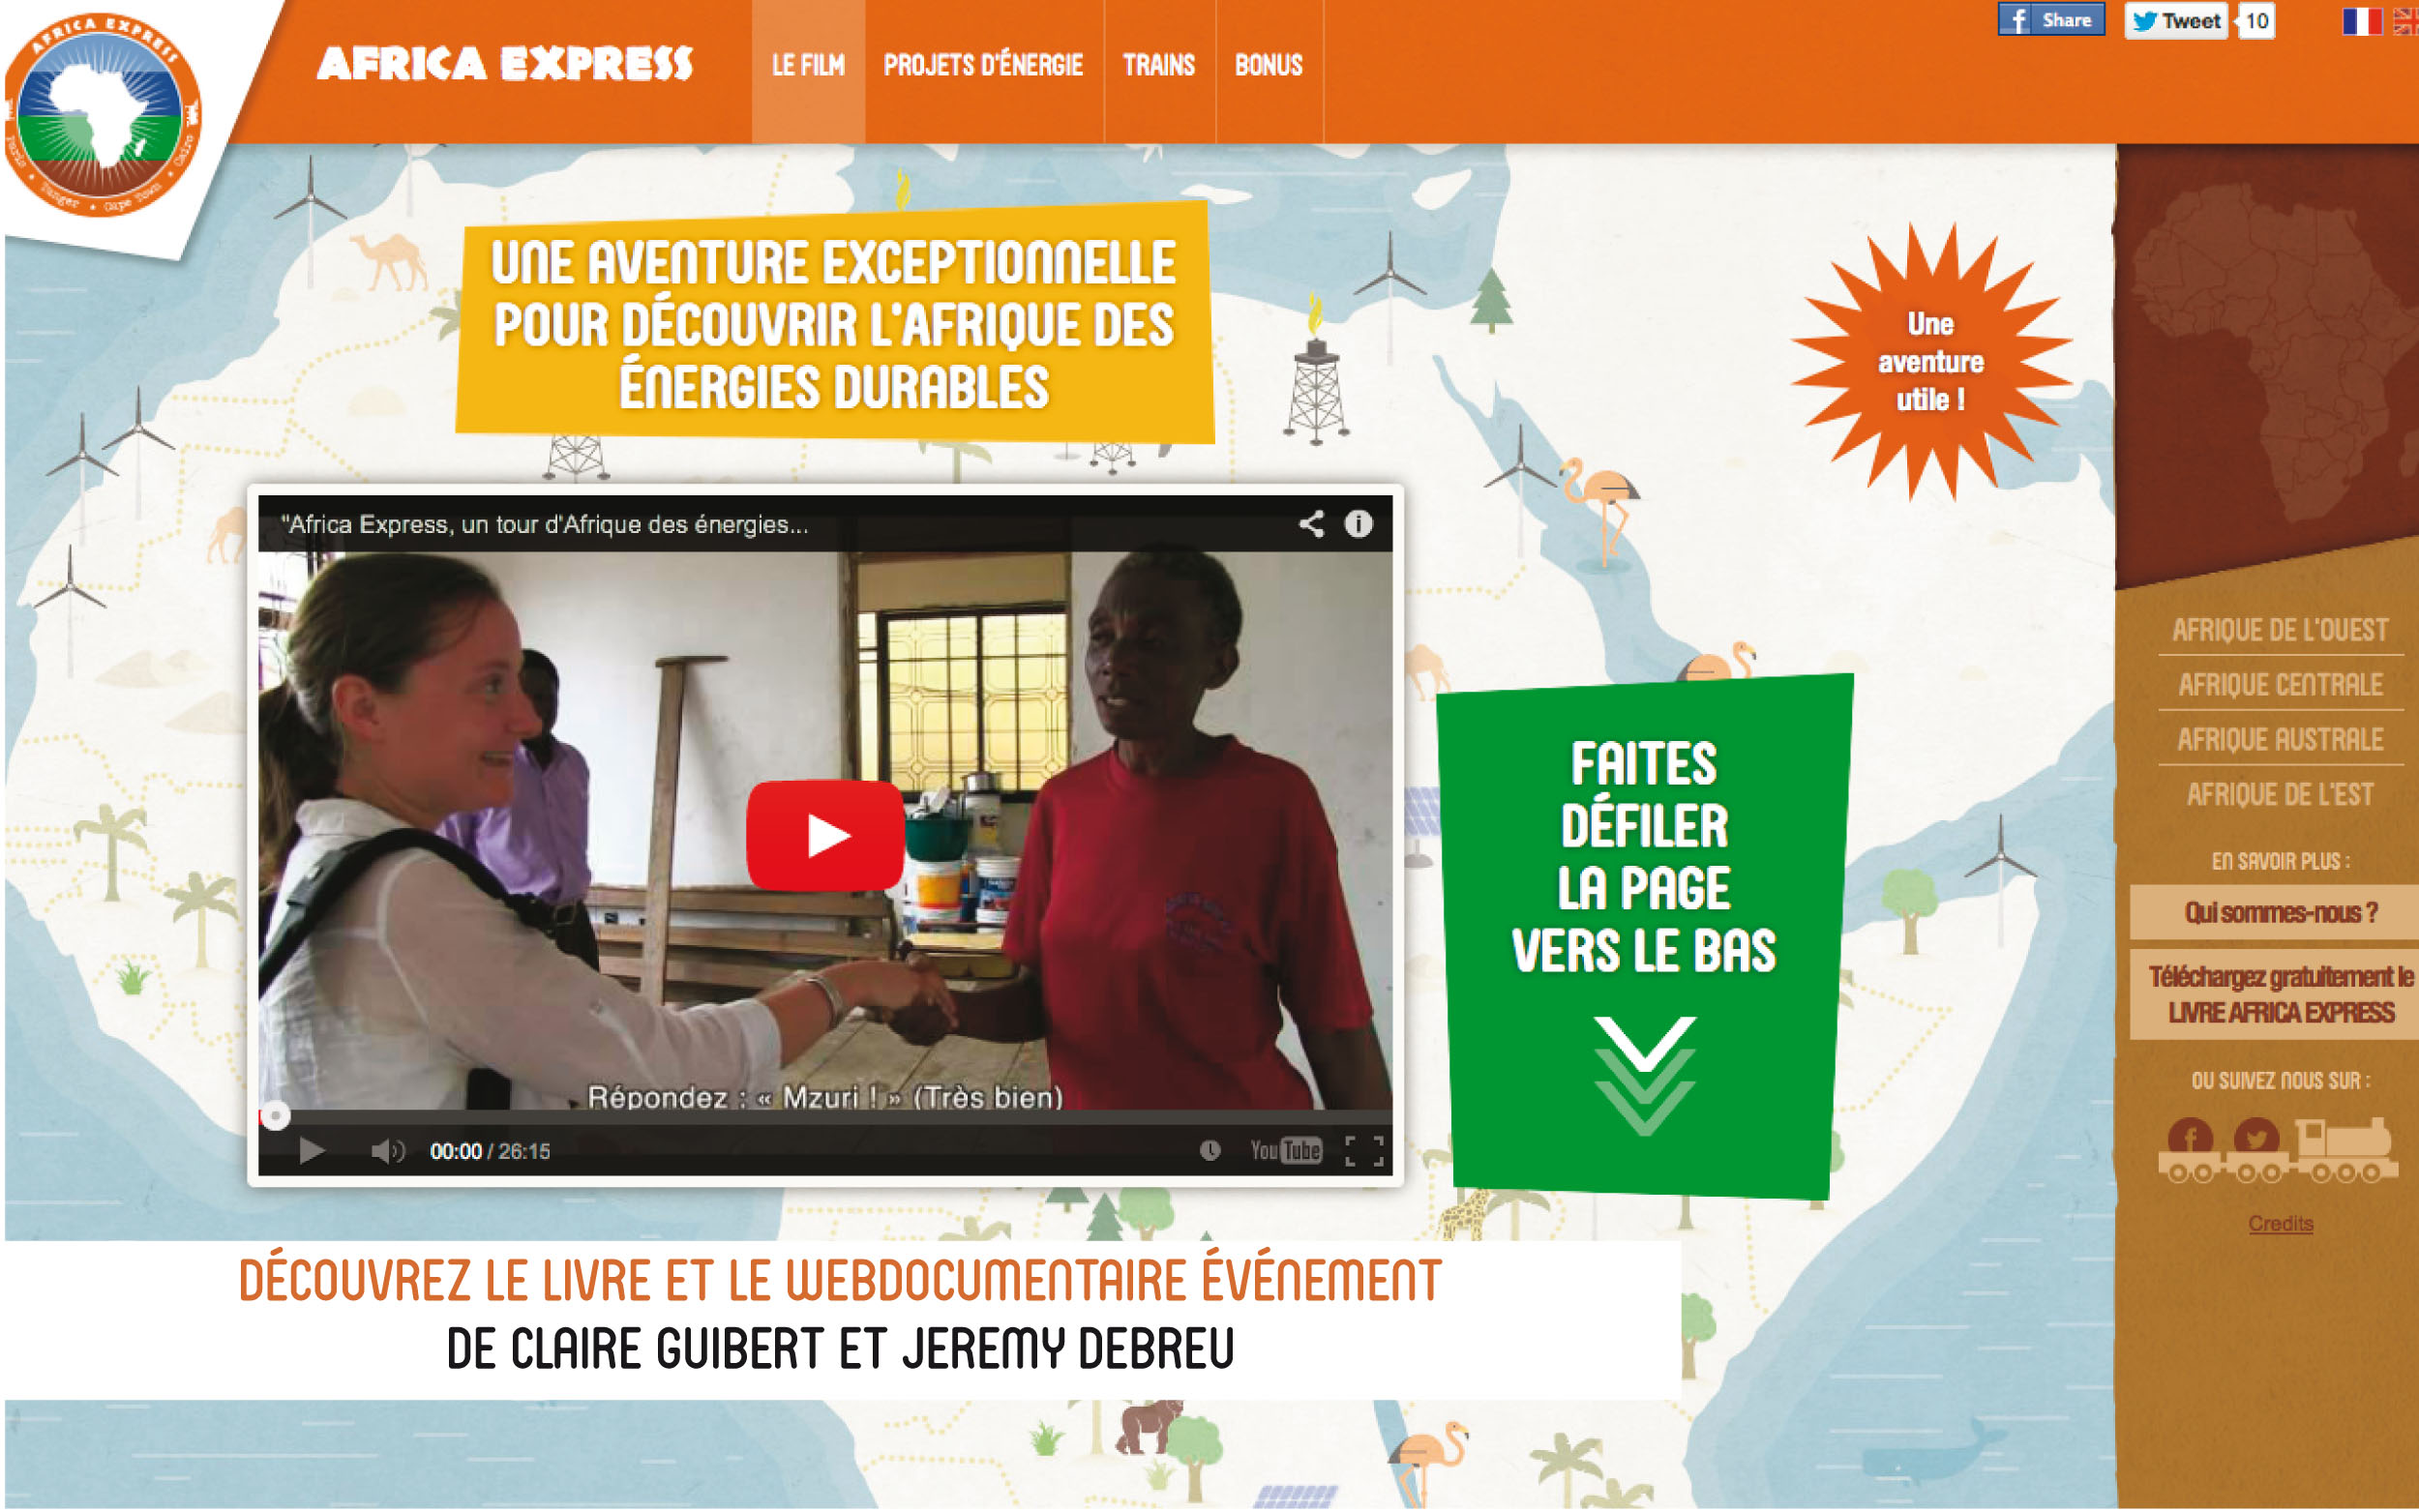 Africa Express - MkF éditions - Afrique - webdocumentaire